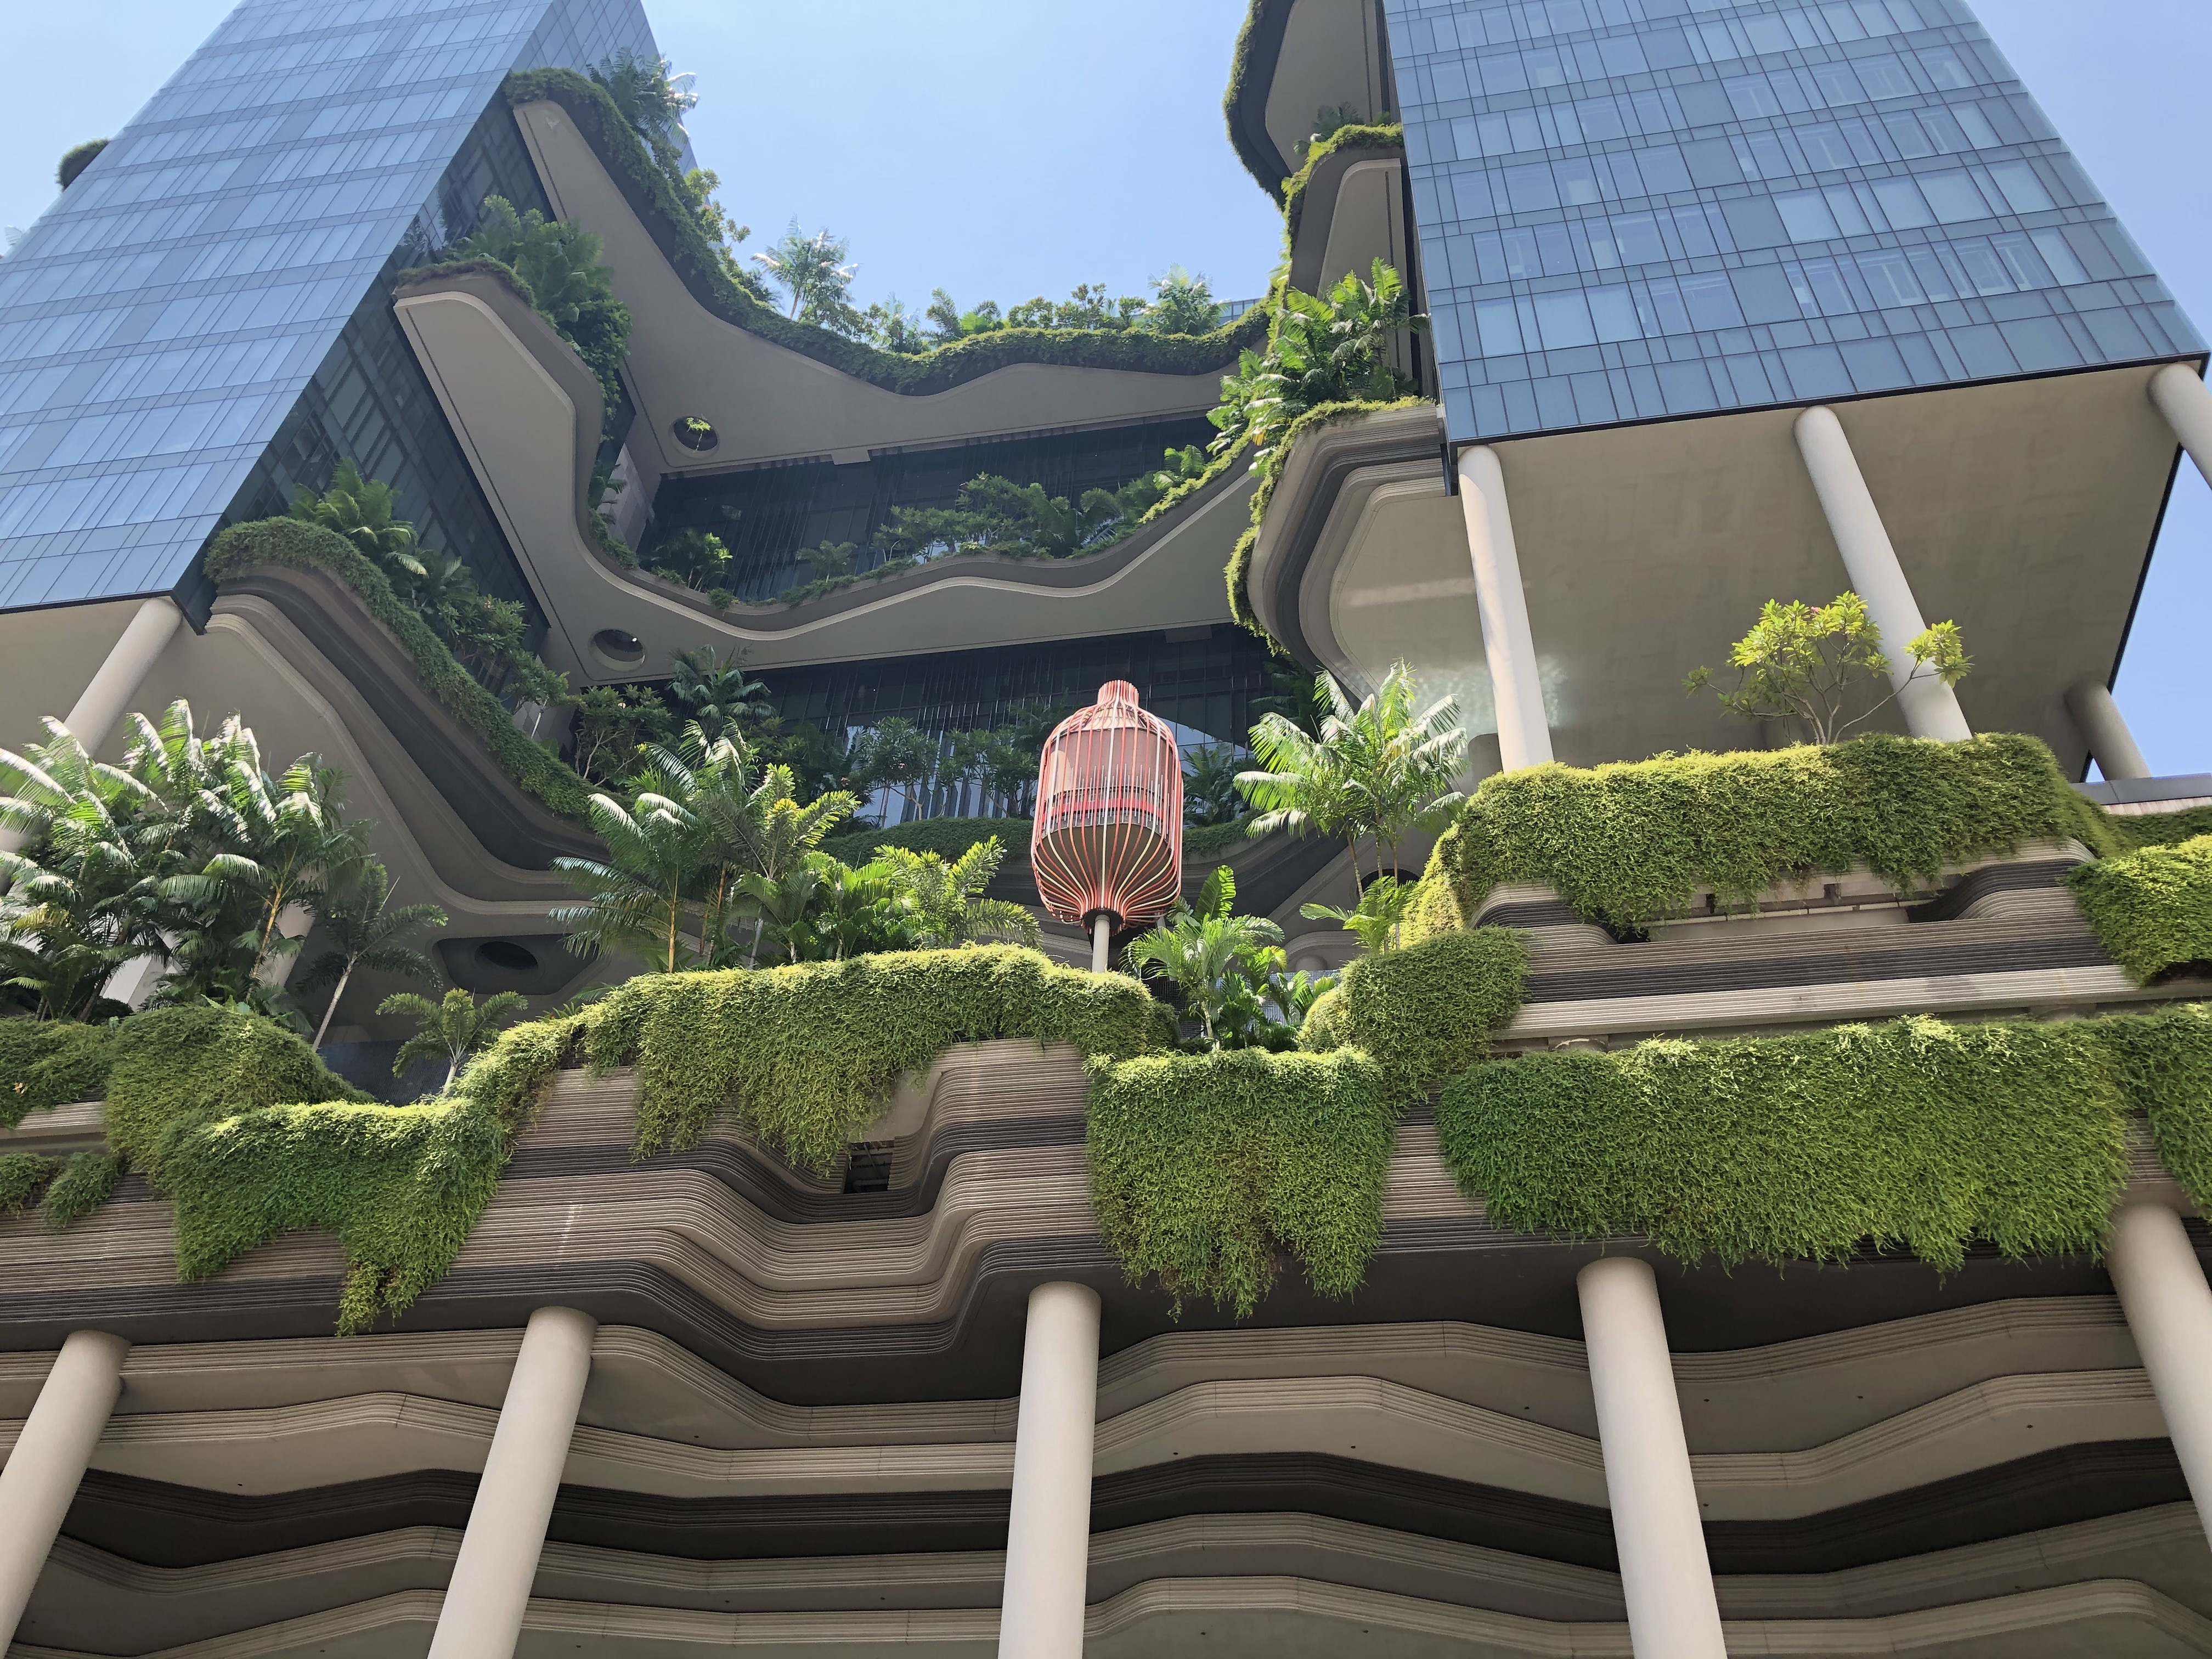 Example for Urban Greening in Singapore